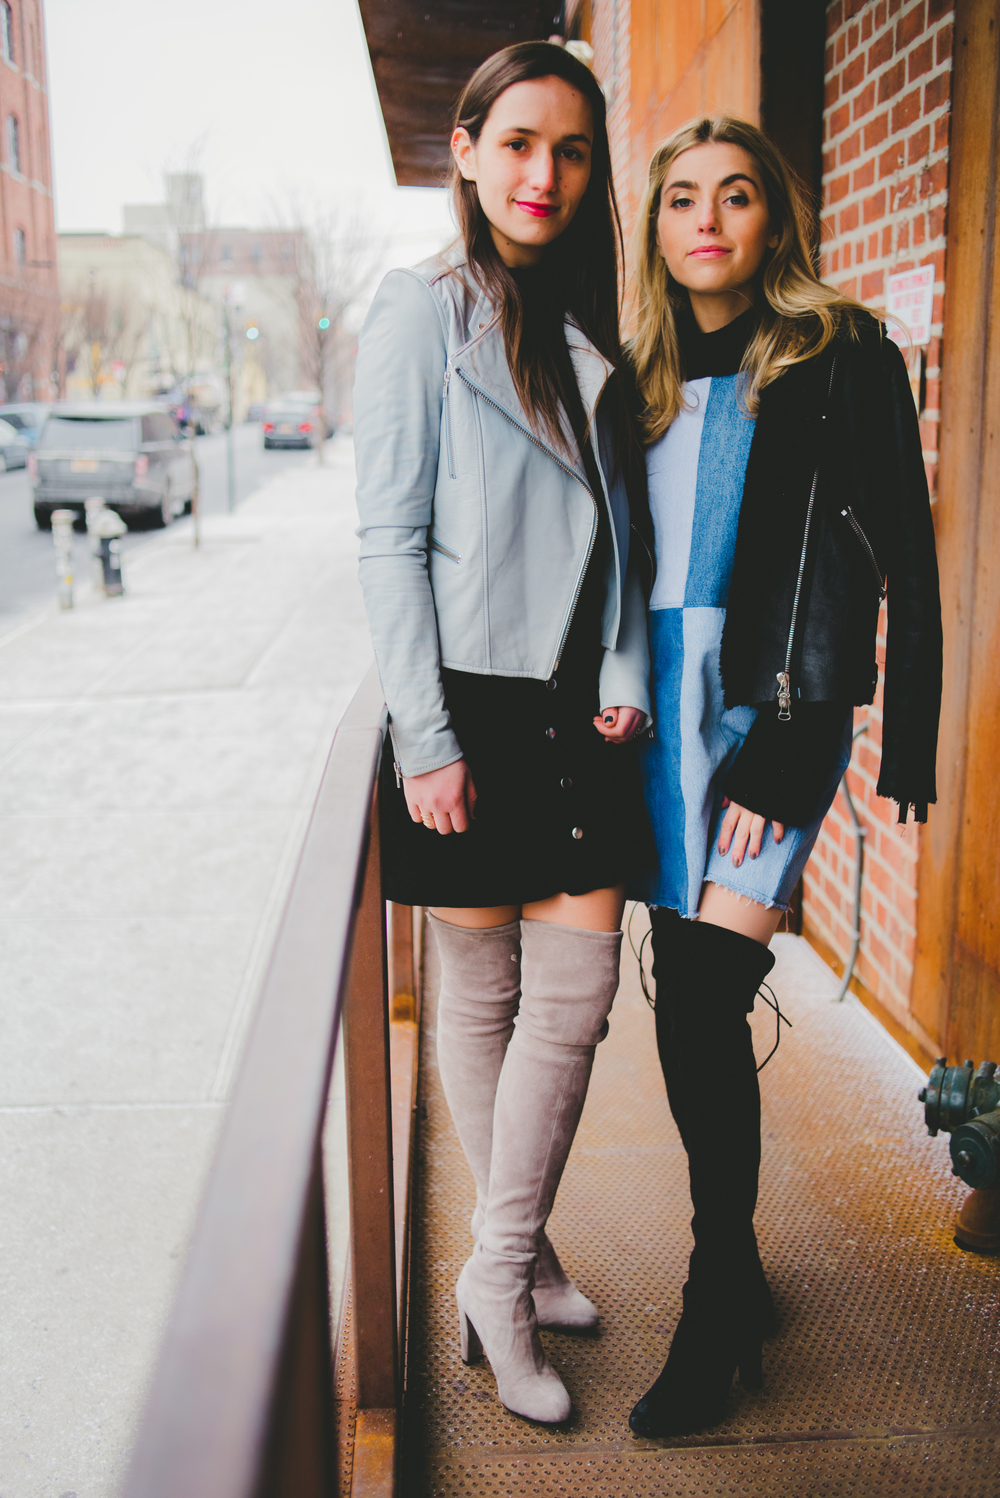 Brooklyn Street Style NYC Fashion Bloggers